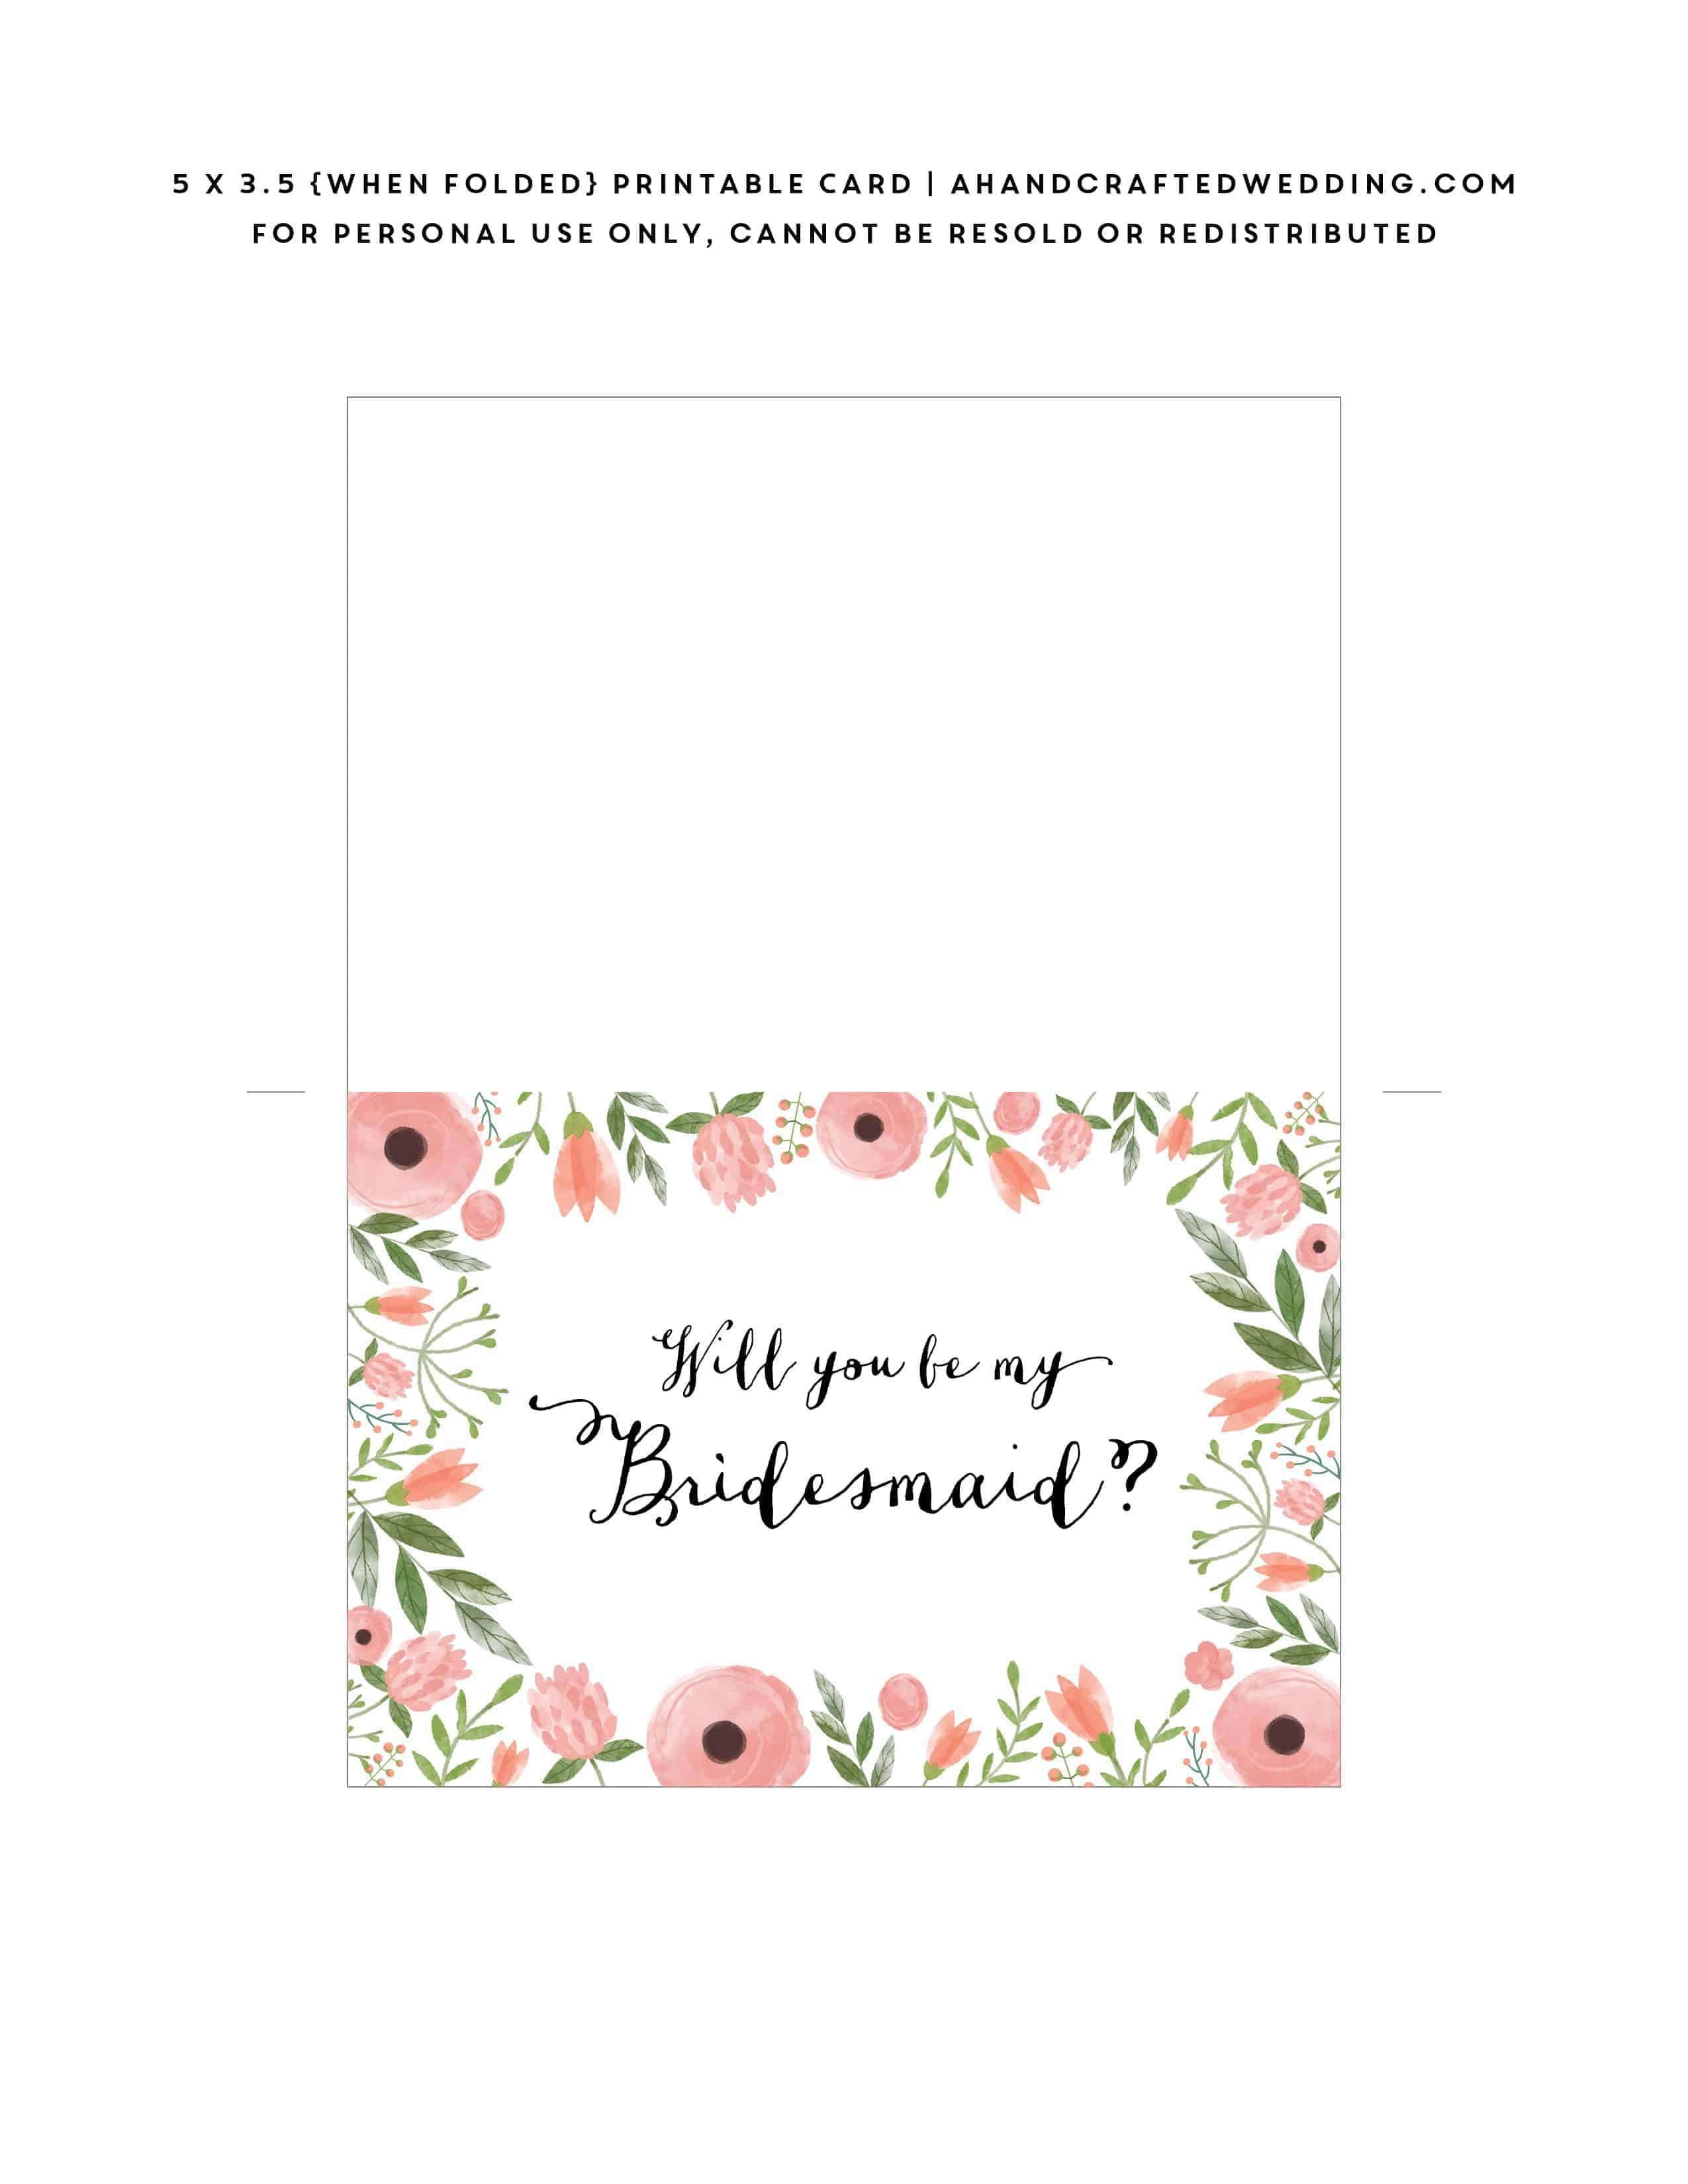 Free Printable Will You Be My Bridesmaid Card | Mountain Modern Life - Free Printable Will You Be My Maid Of Honor Card